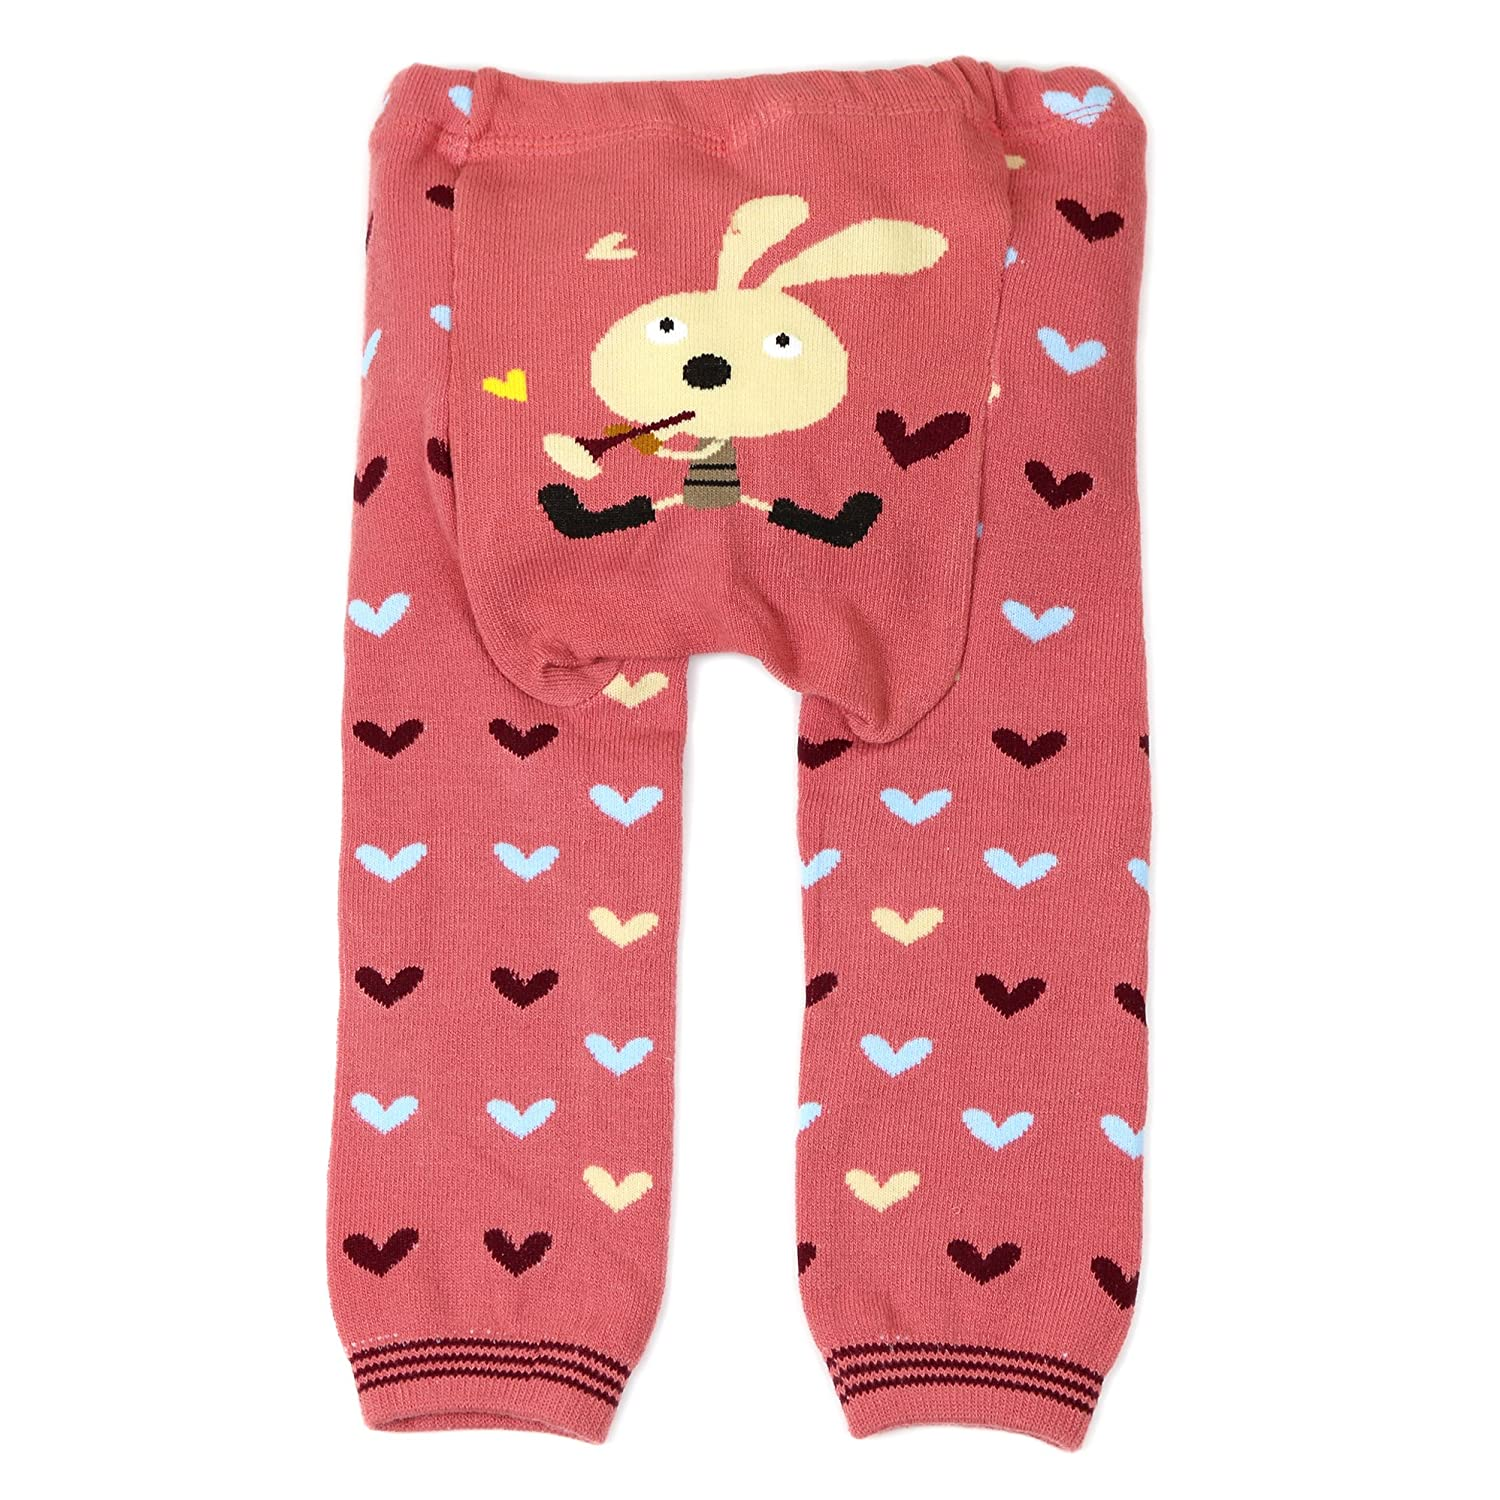 Baby & Toddler Wooly Leggings by Dotty Fish - Girls Designs - 6-12 months, 12-24 months & 24+ months Busha